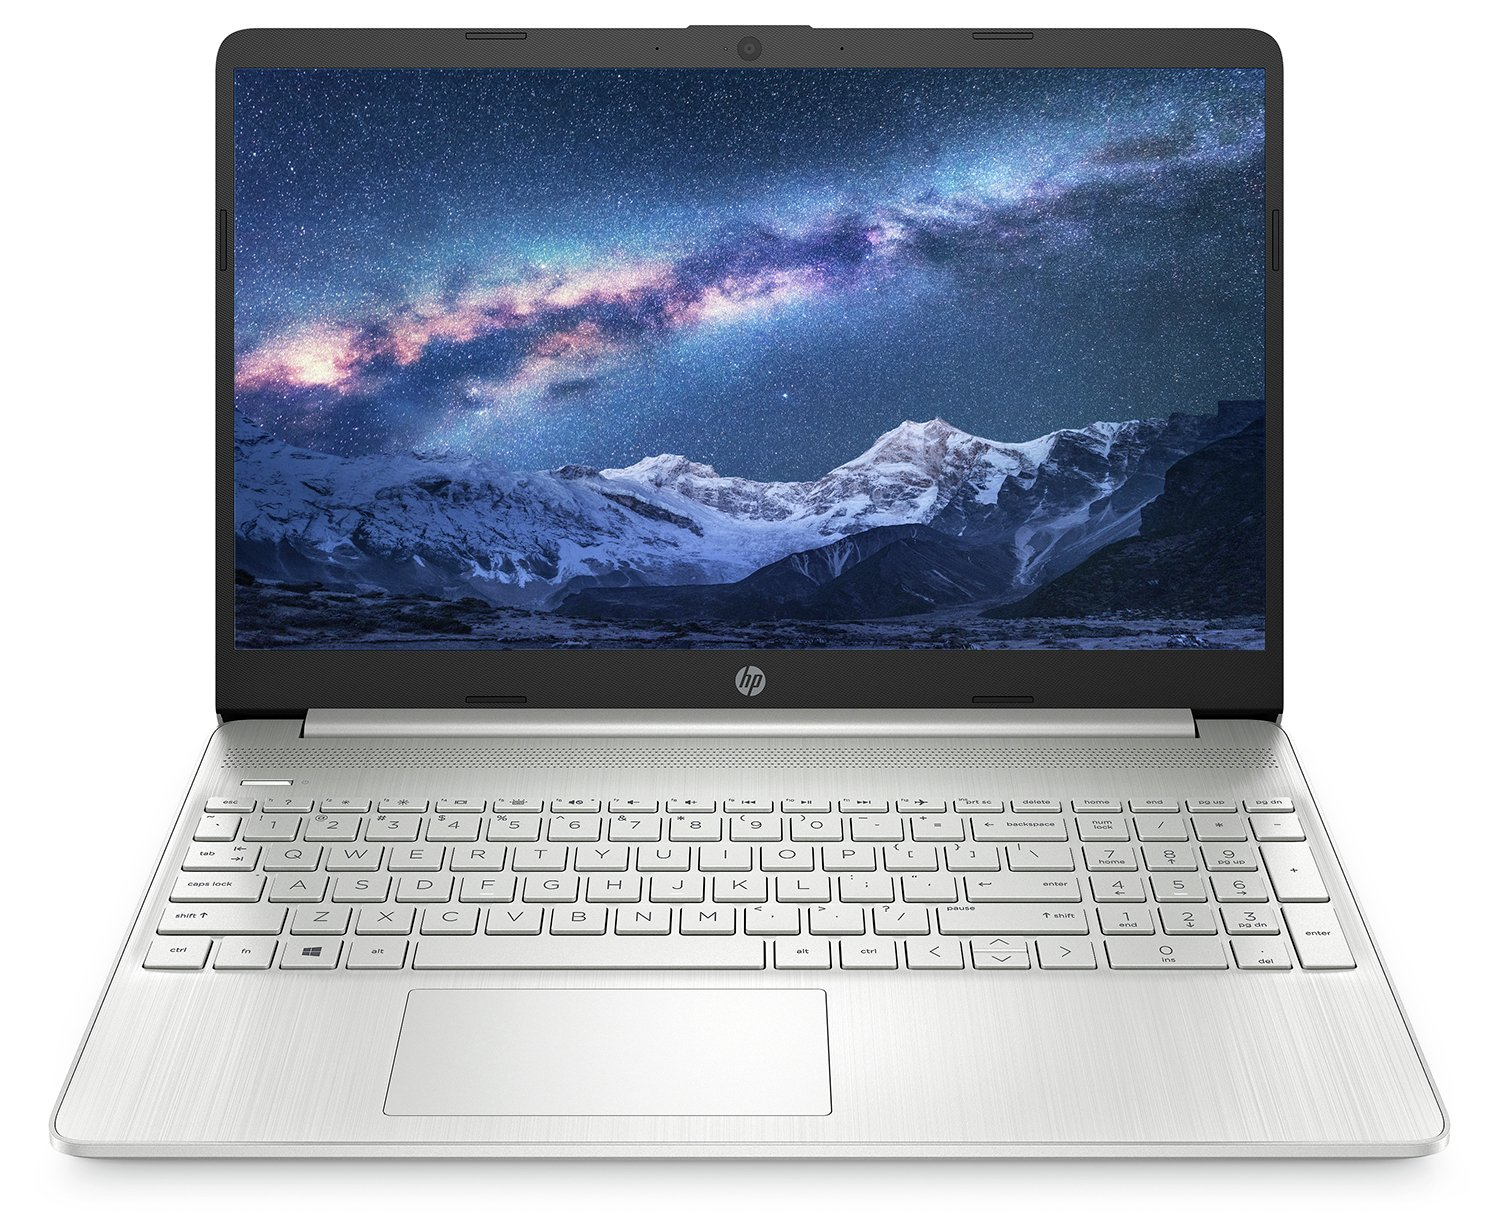 HP 15S 15.6 Inch i3 4GB 128GB FHD Laptop - Silver